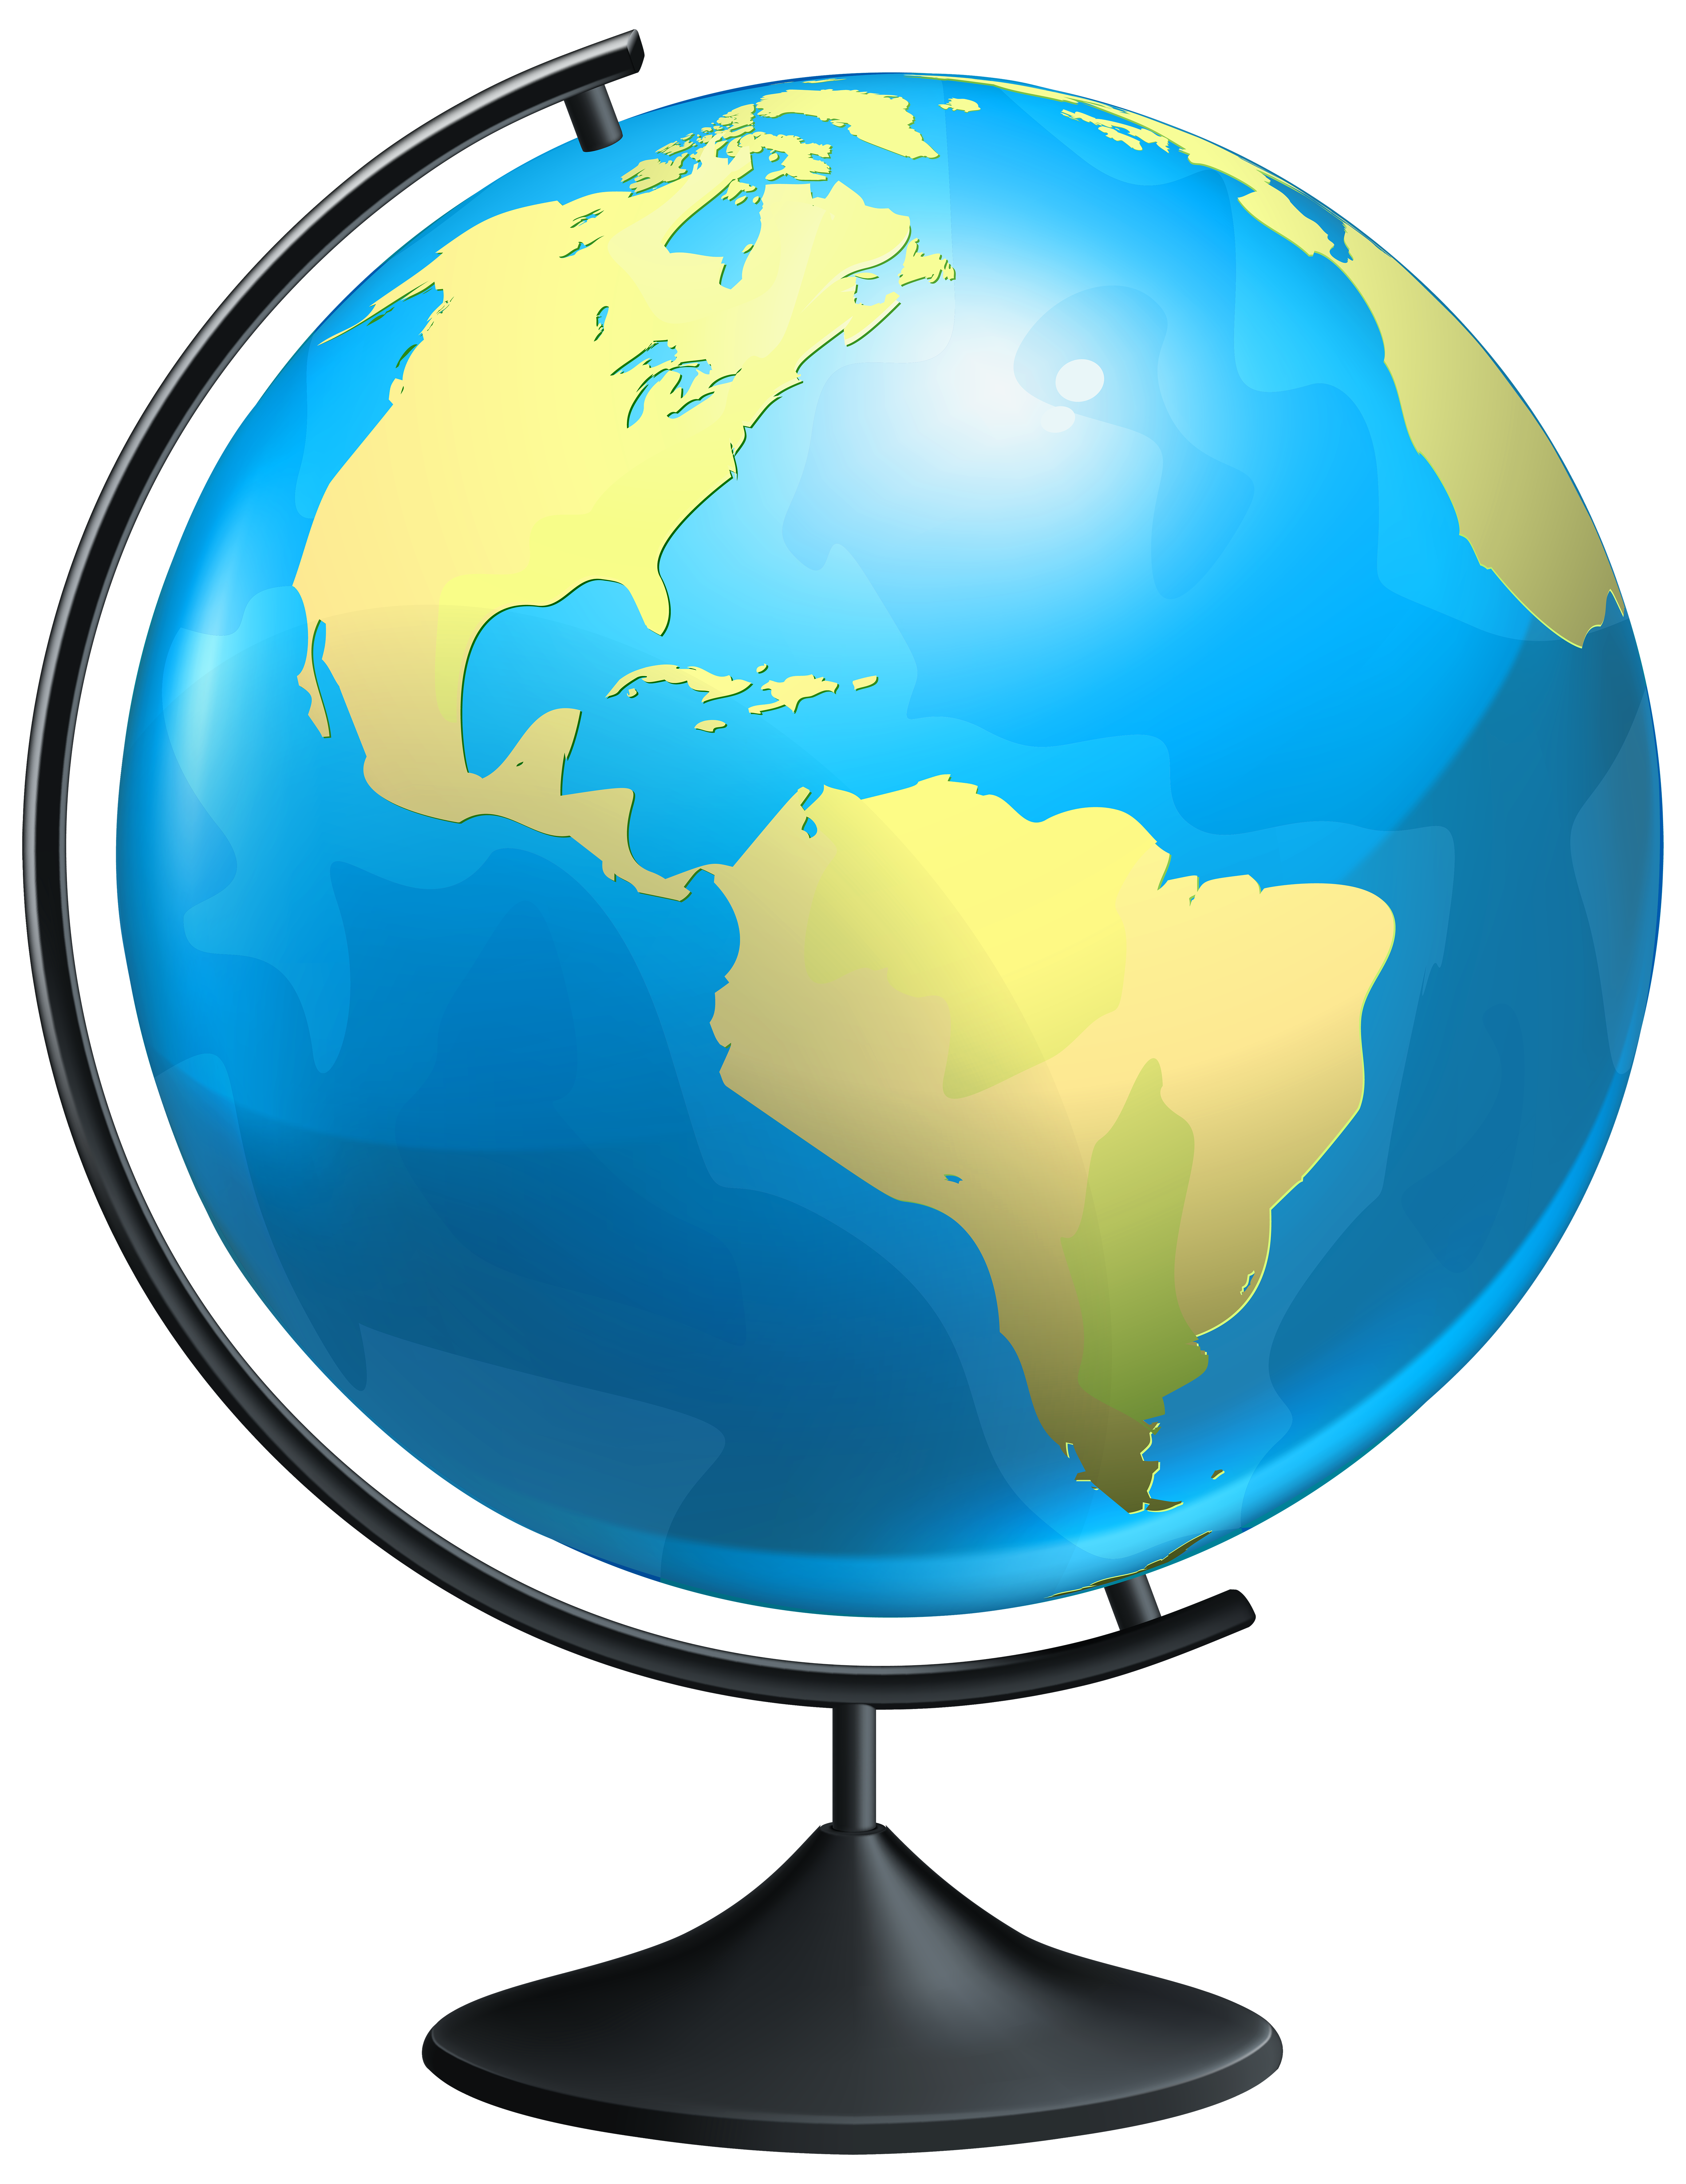 Geography clipart globe  Image View Yopriceville Gallery